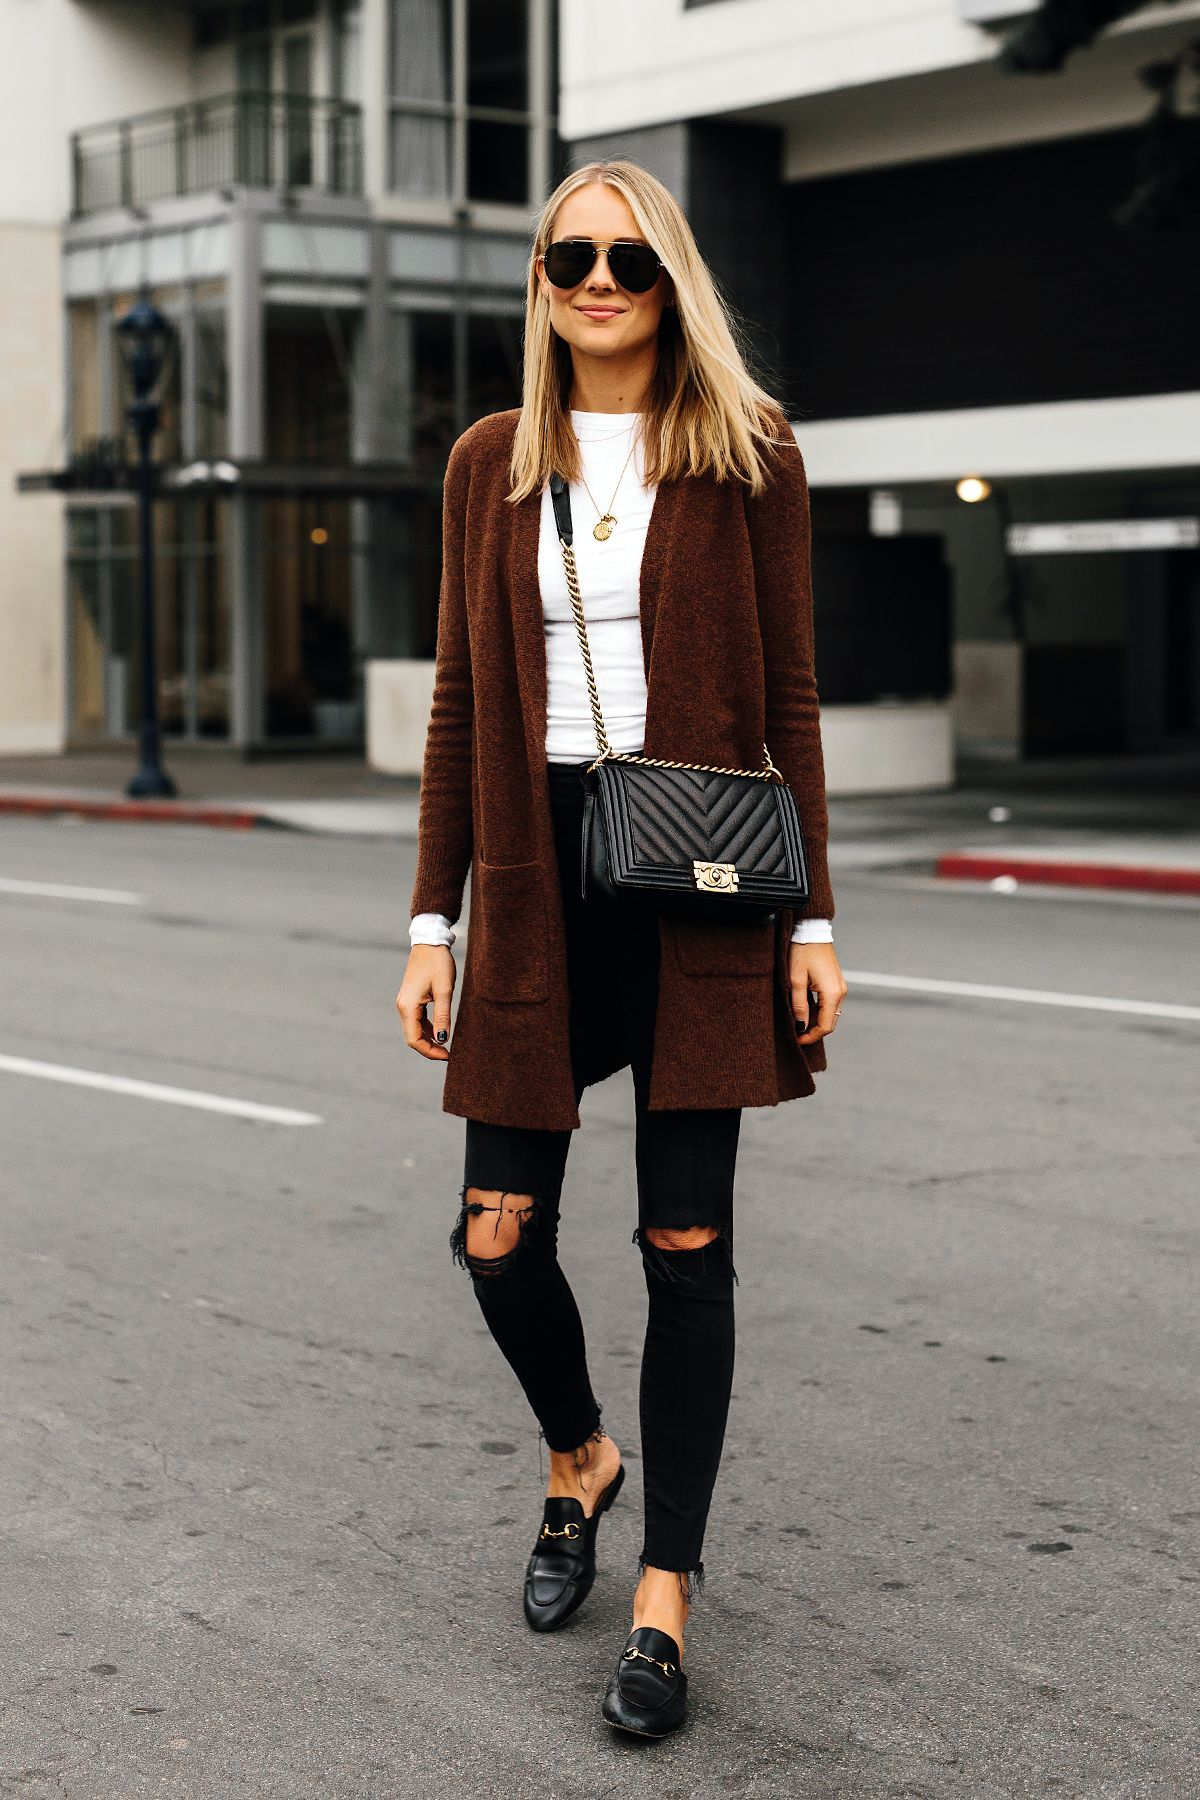 619a938062f1 I ve been buying more sweater and knit styles to wear with jeans and  sneakers or casual shoes.